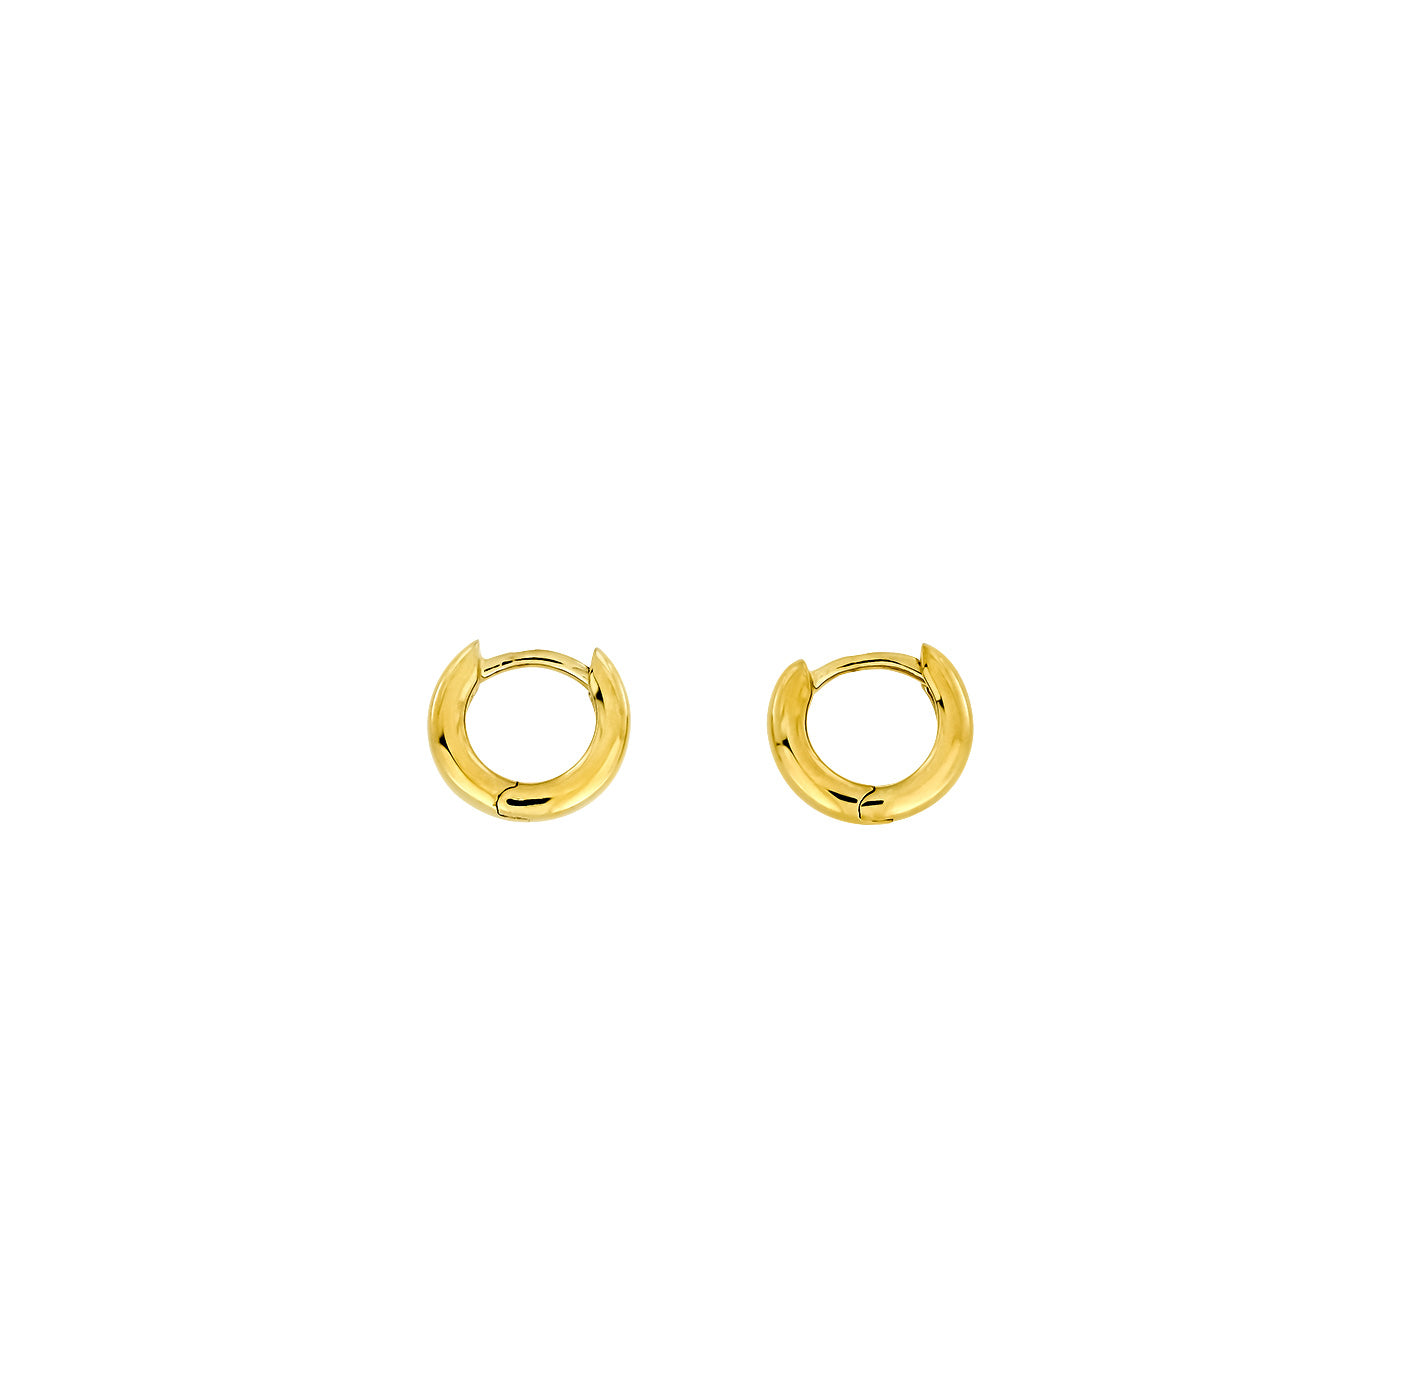 Gold Hinged Hoops - Round Section - 9ct -10mm